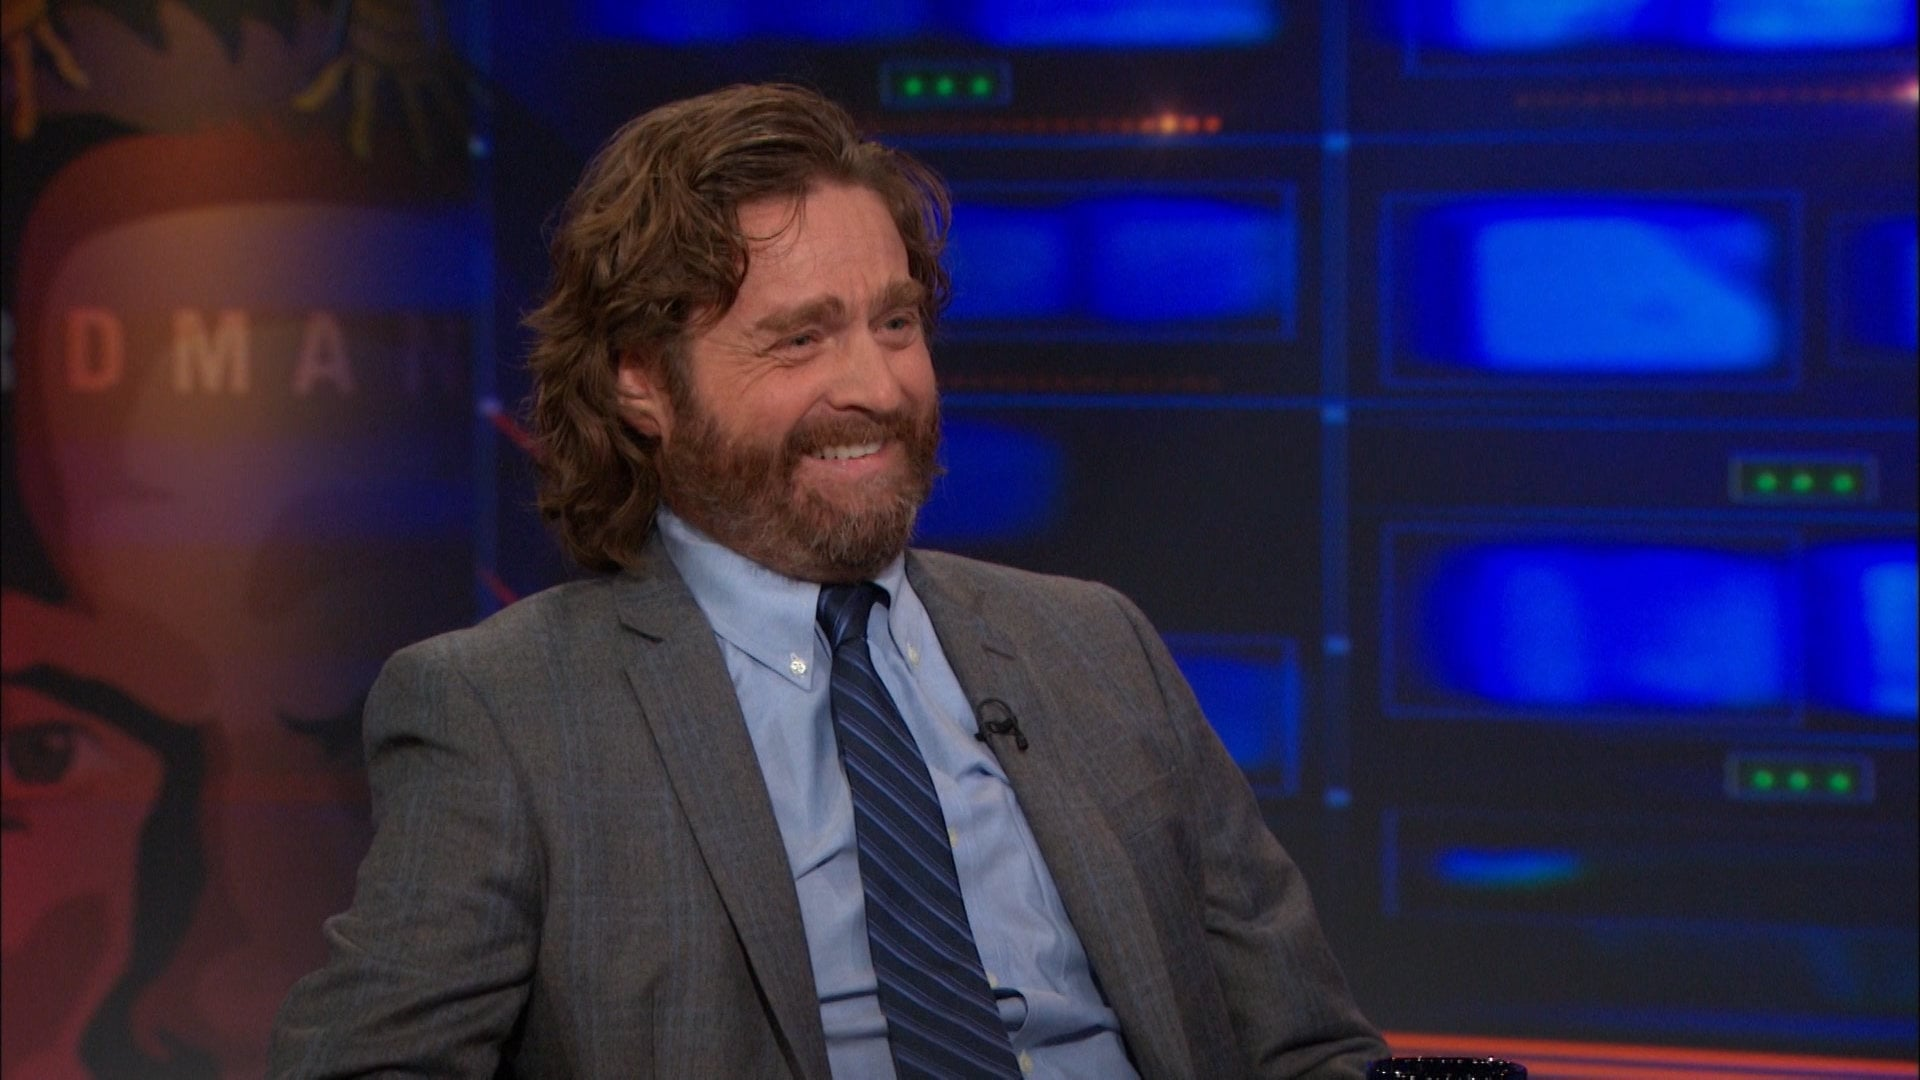 The Daily Show with Trevor Noah - Season 20 Episode 10 : Zach Galifianakis (1970)